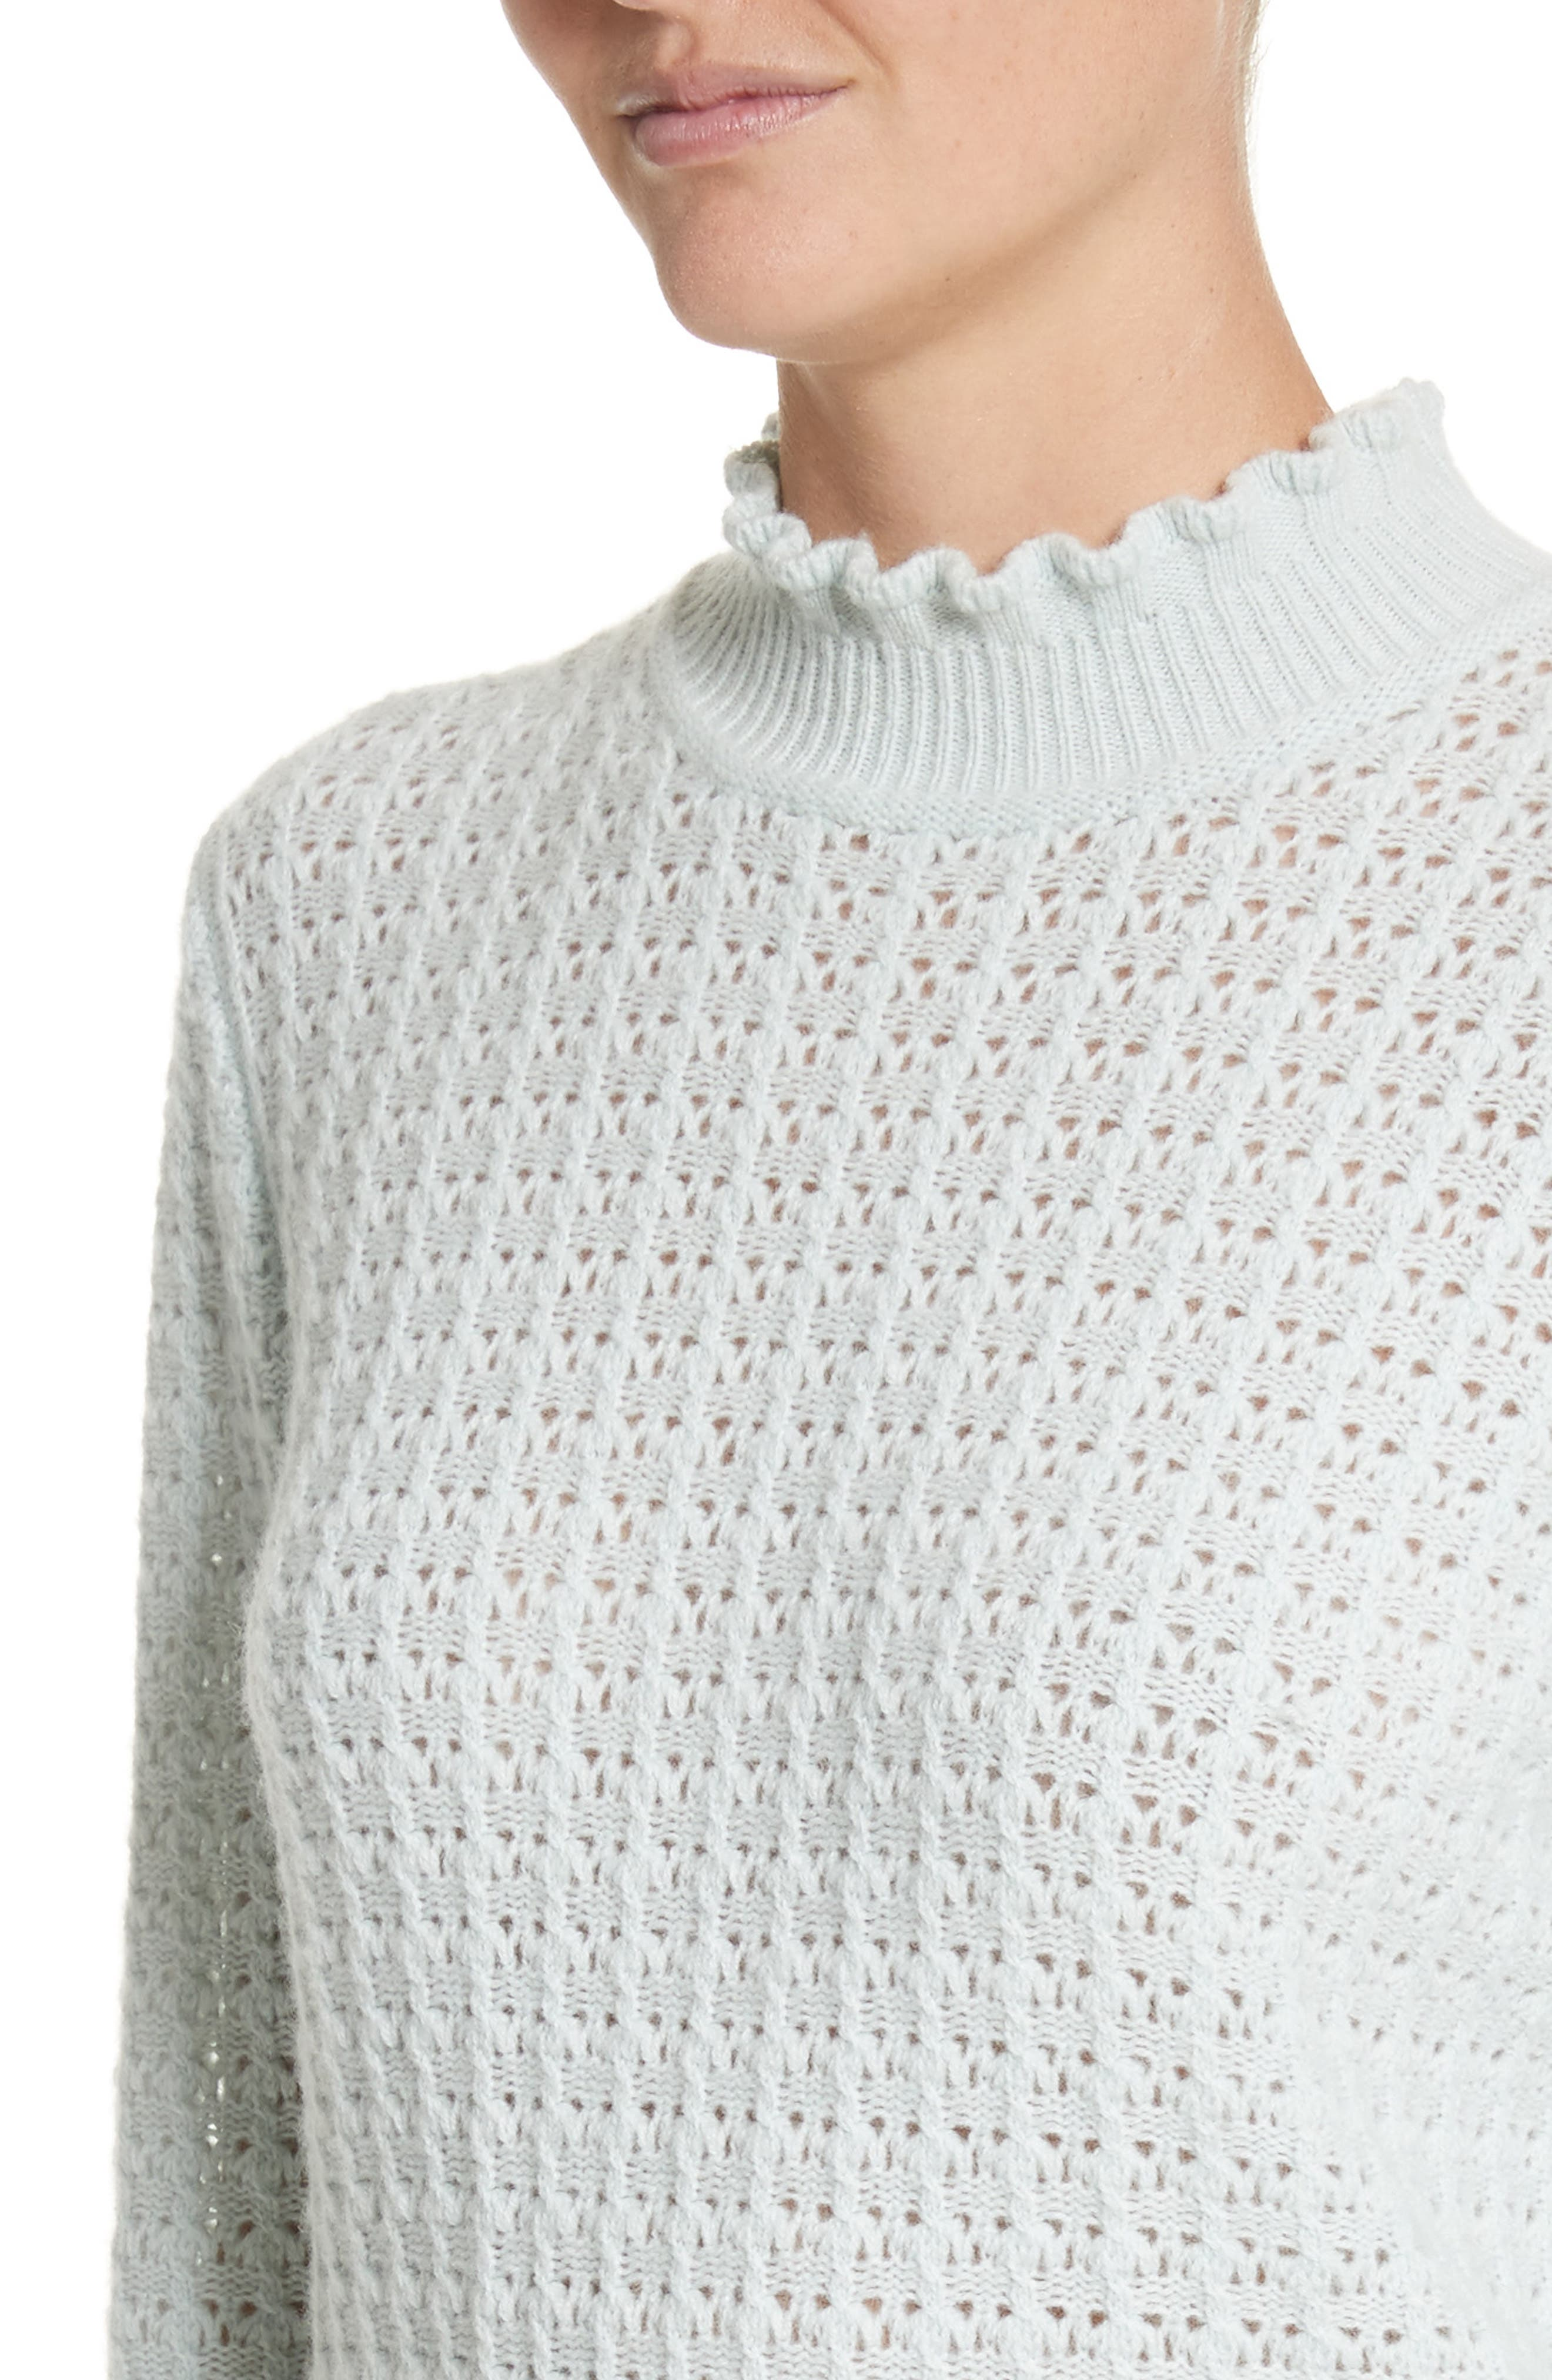 Ruffle Mock Neck Cashmere Sweater,                             Alternate thumbnail 4, color,                             Pale Green